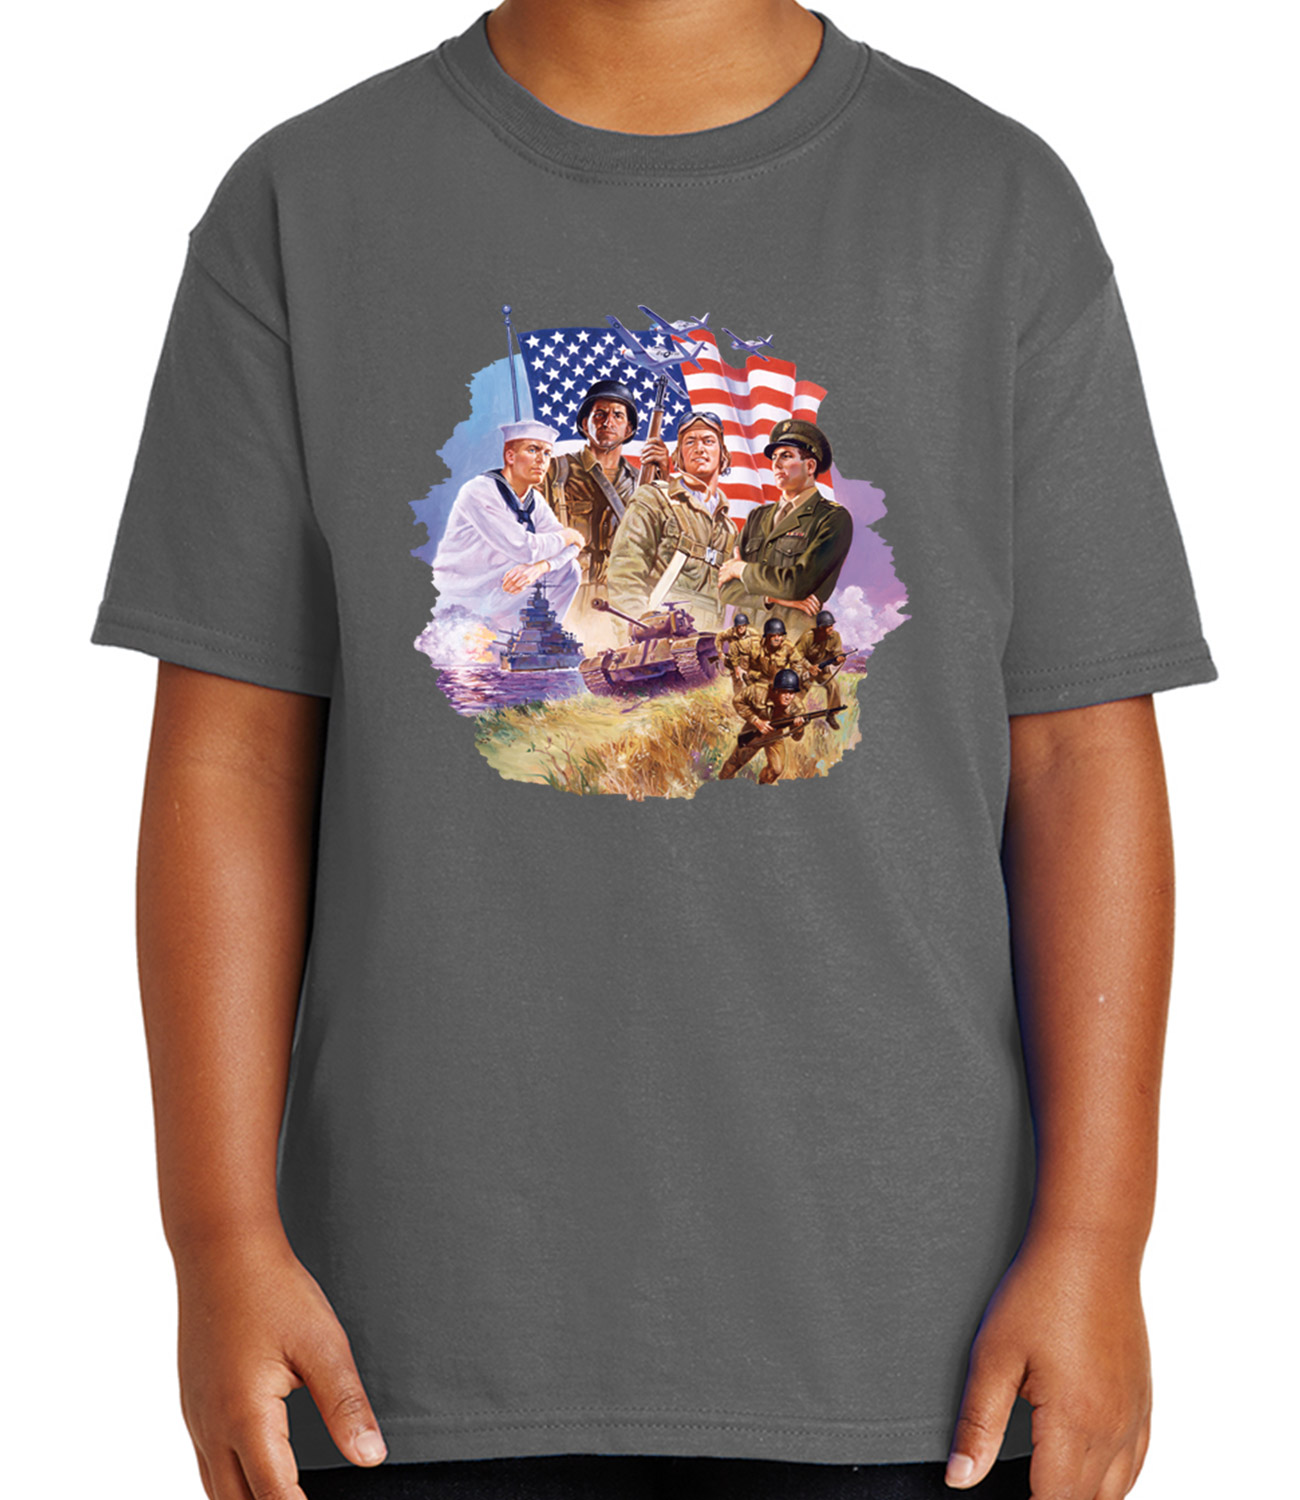 1603C Patriotic US Army Kid/'s T-shirt American Military Soldiers Tee for Youth